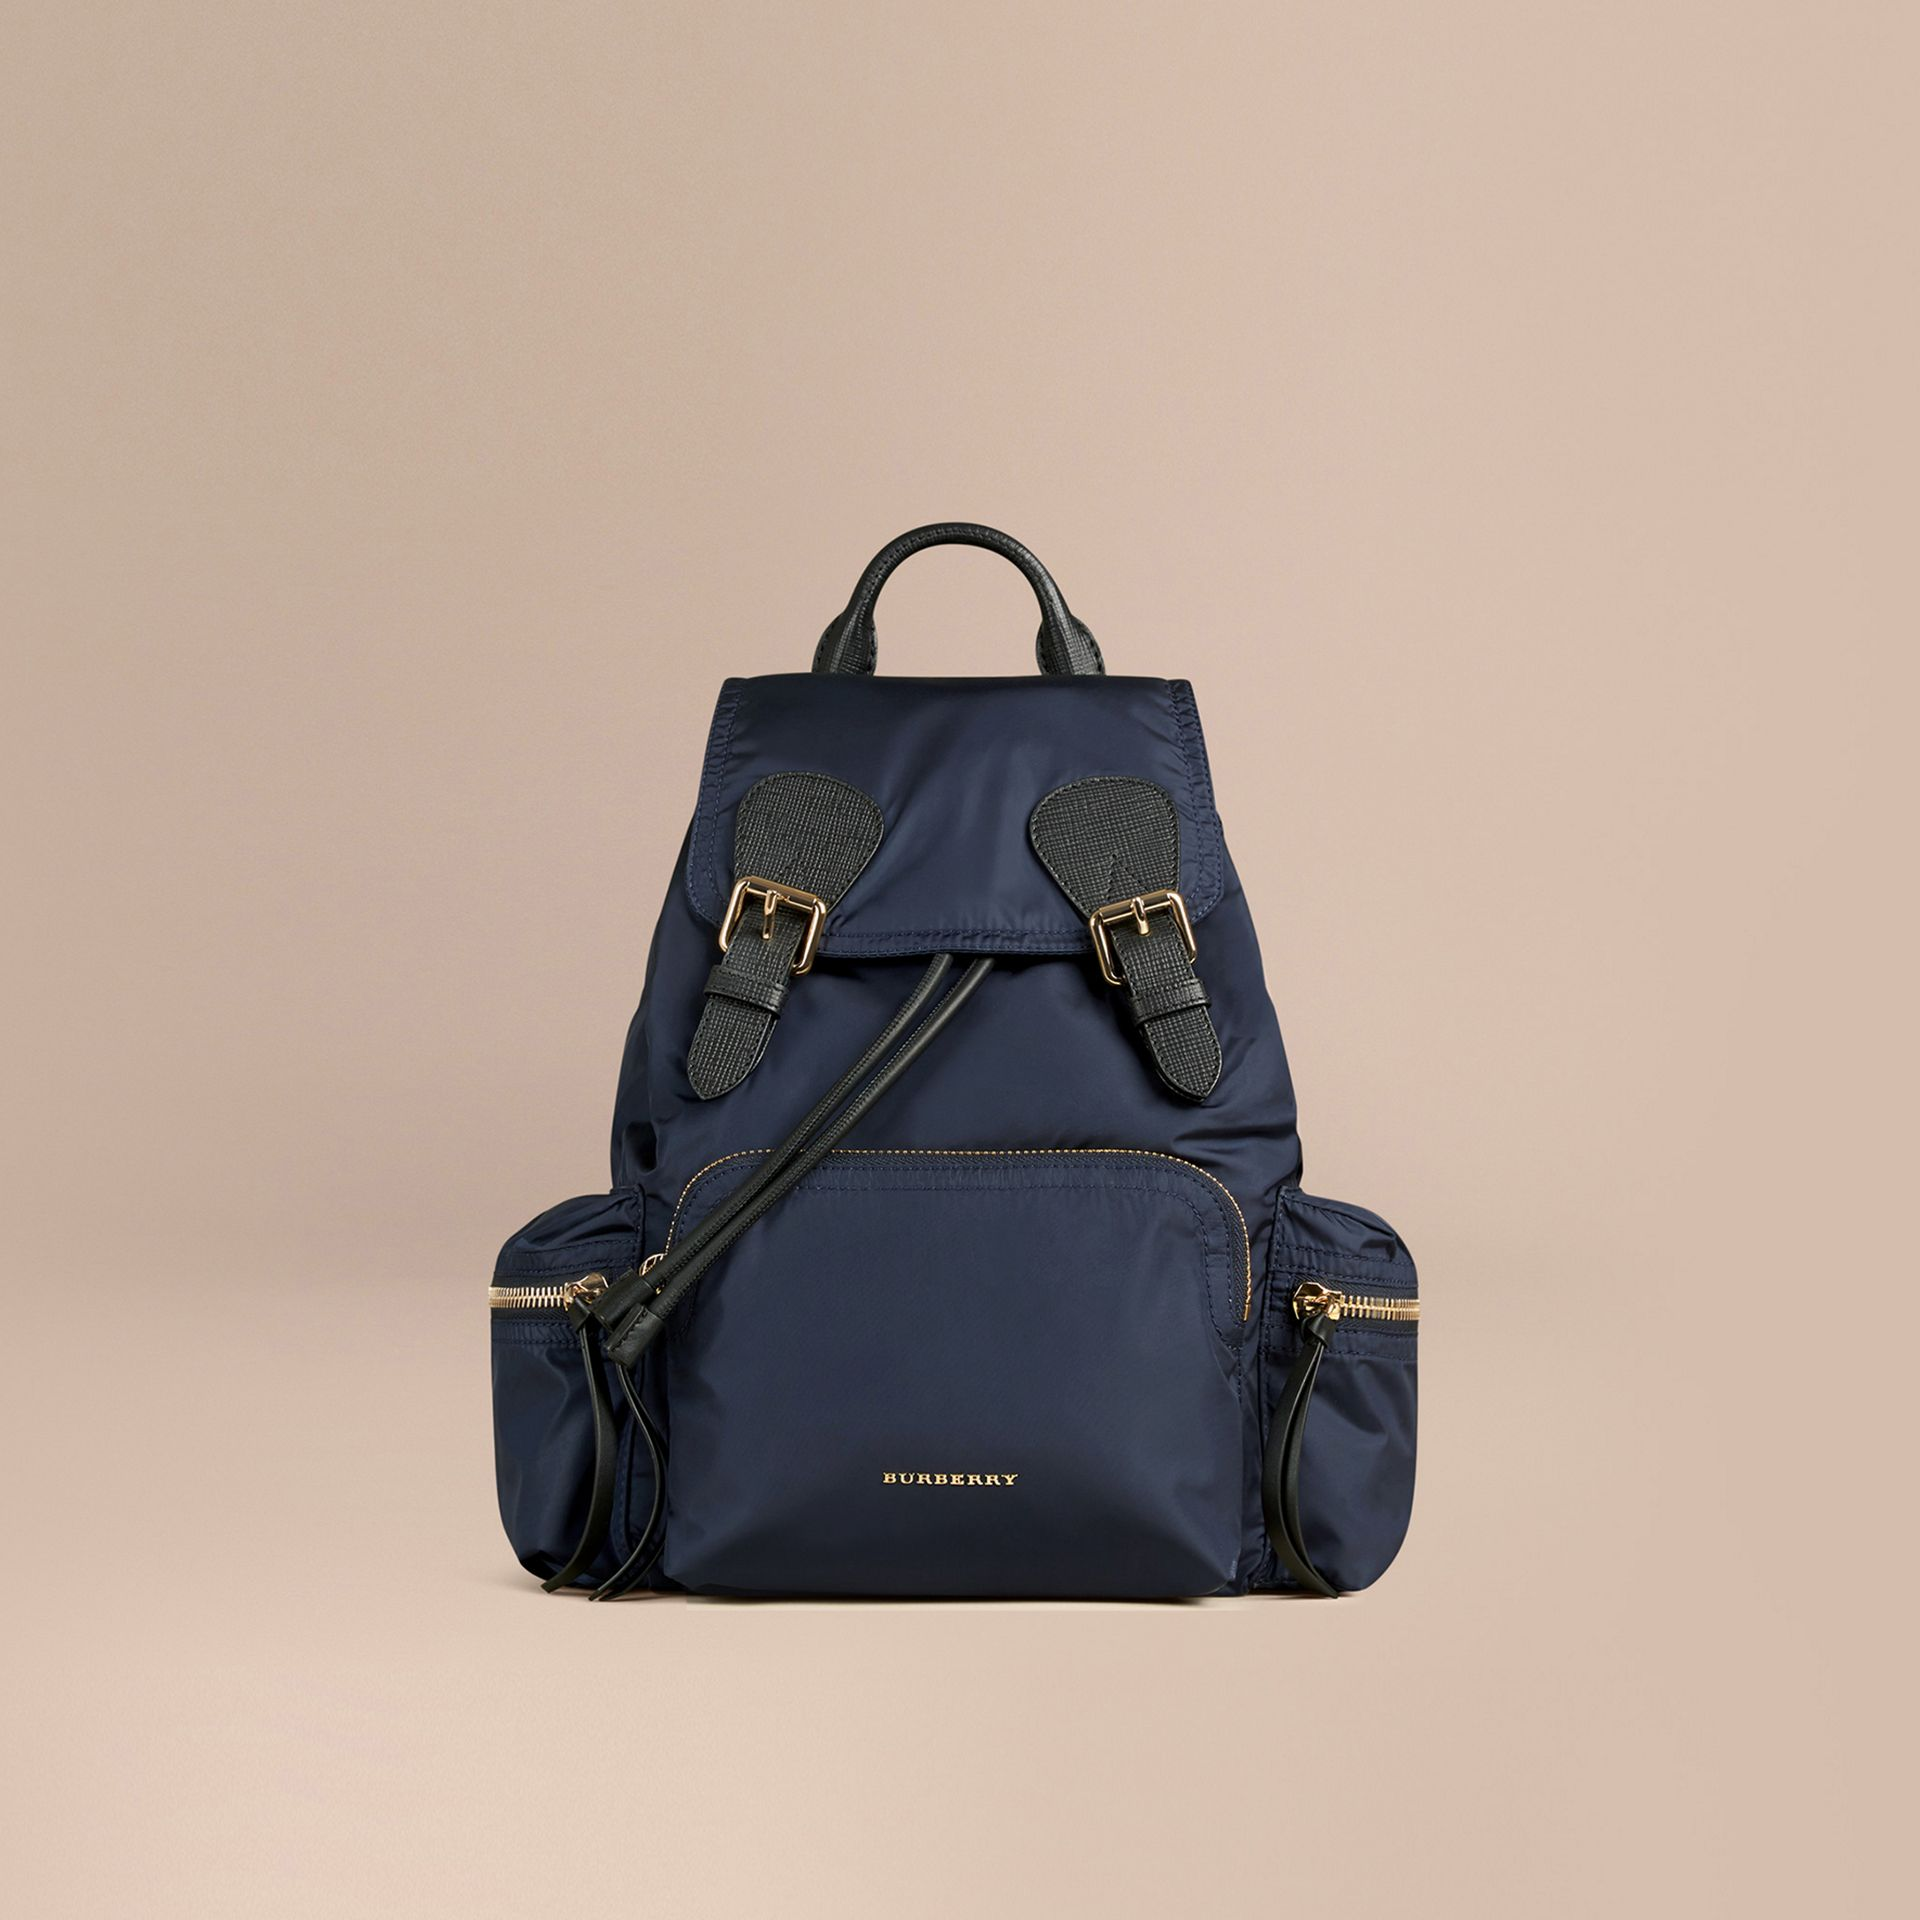 Zaino The Rucksack medio in nylon tecnico e pelle (Blu Inchiostro) - Donna | Burberry - immagine della galleria 1